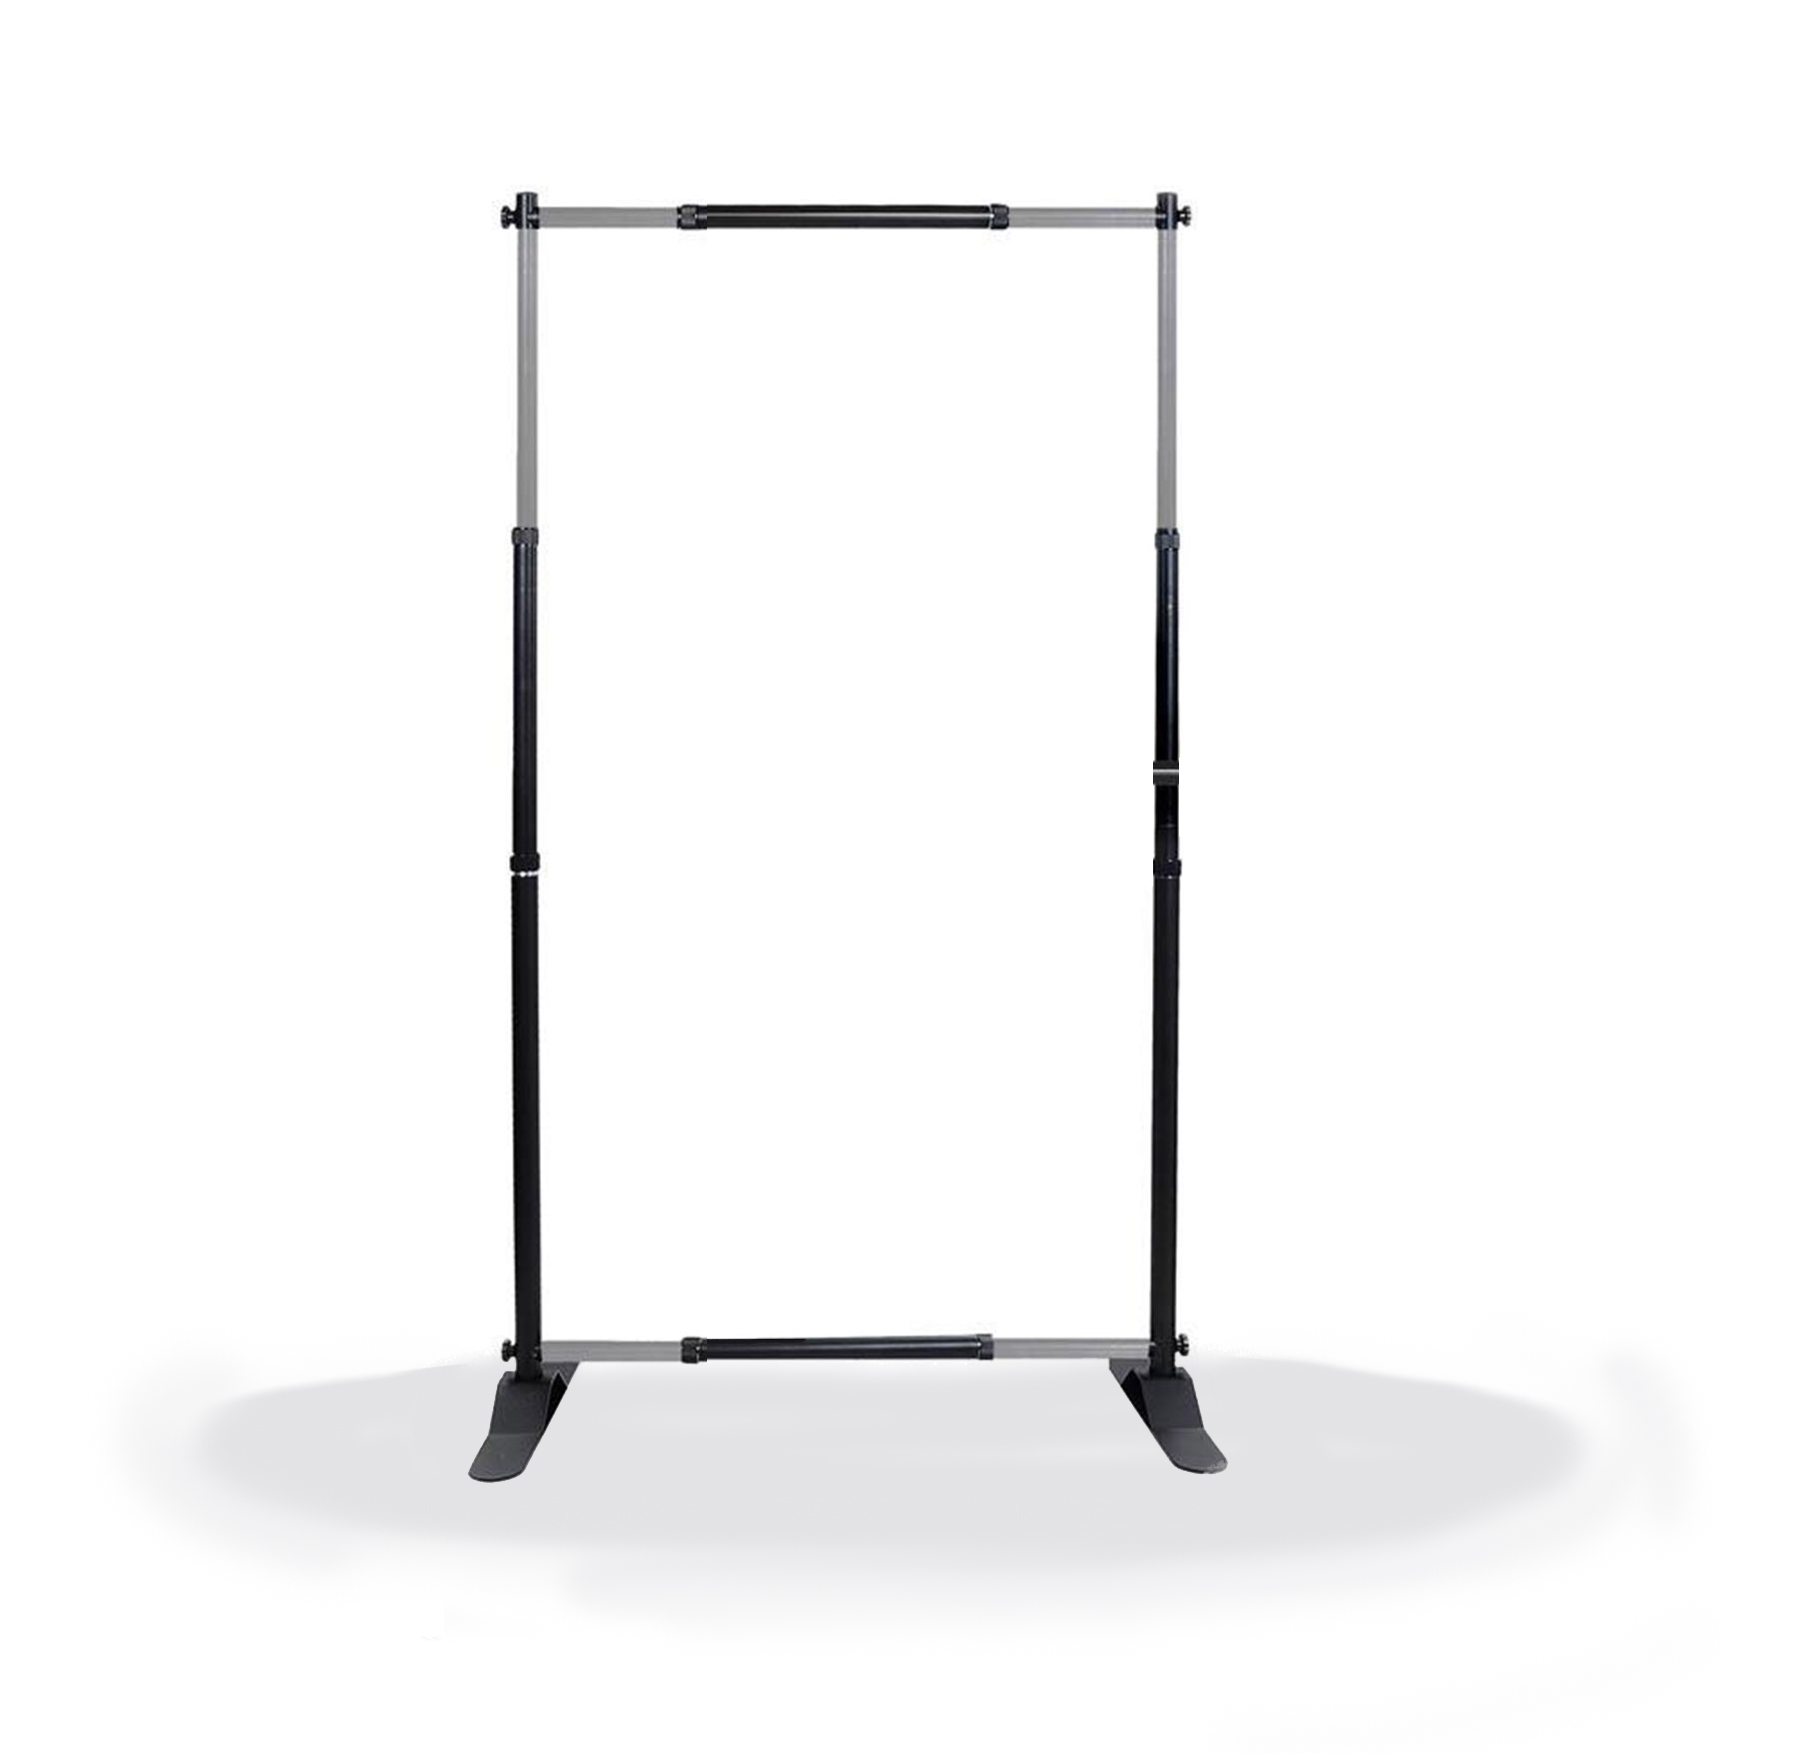 8 x 4 telescoping banner stand